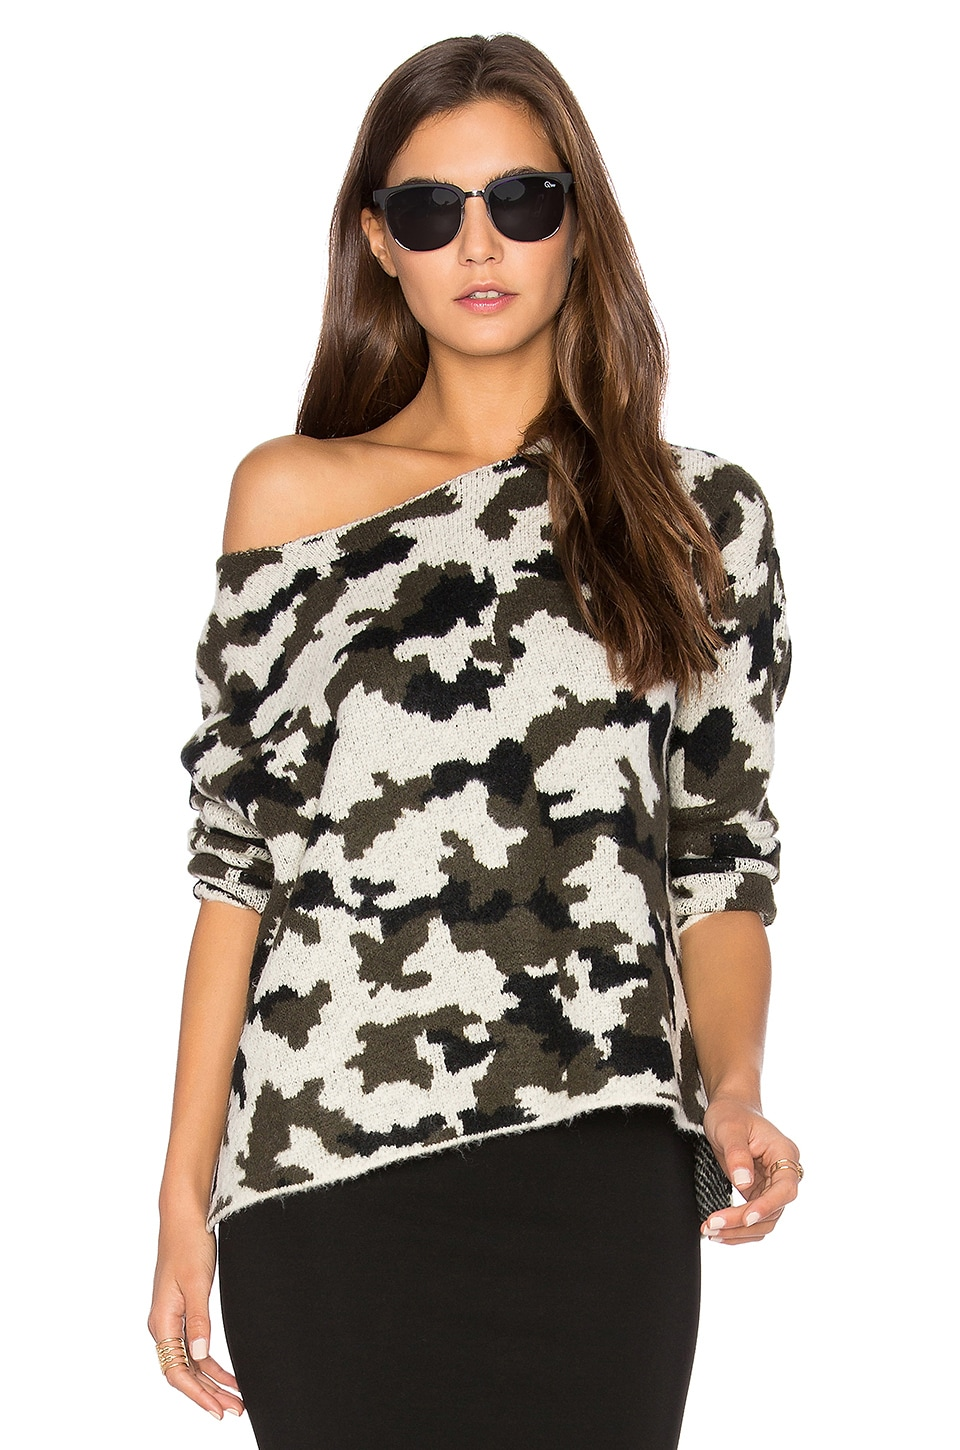 Camo Sweater by Central Park West